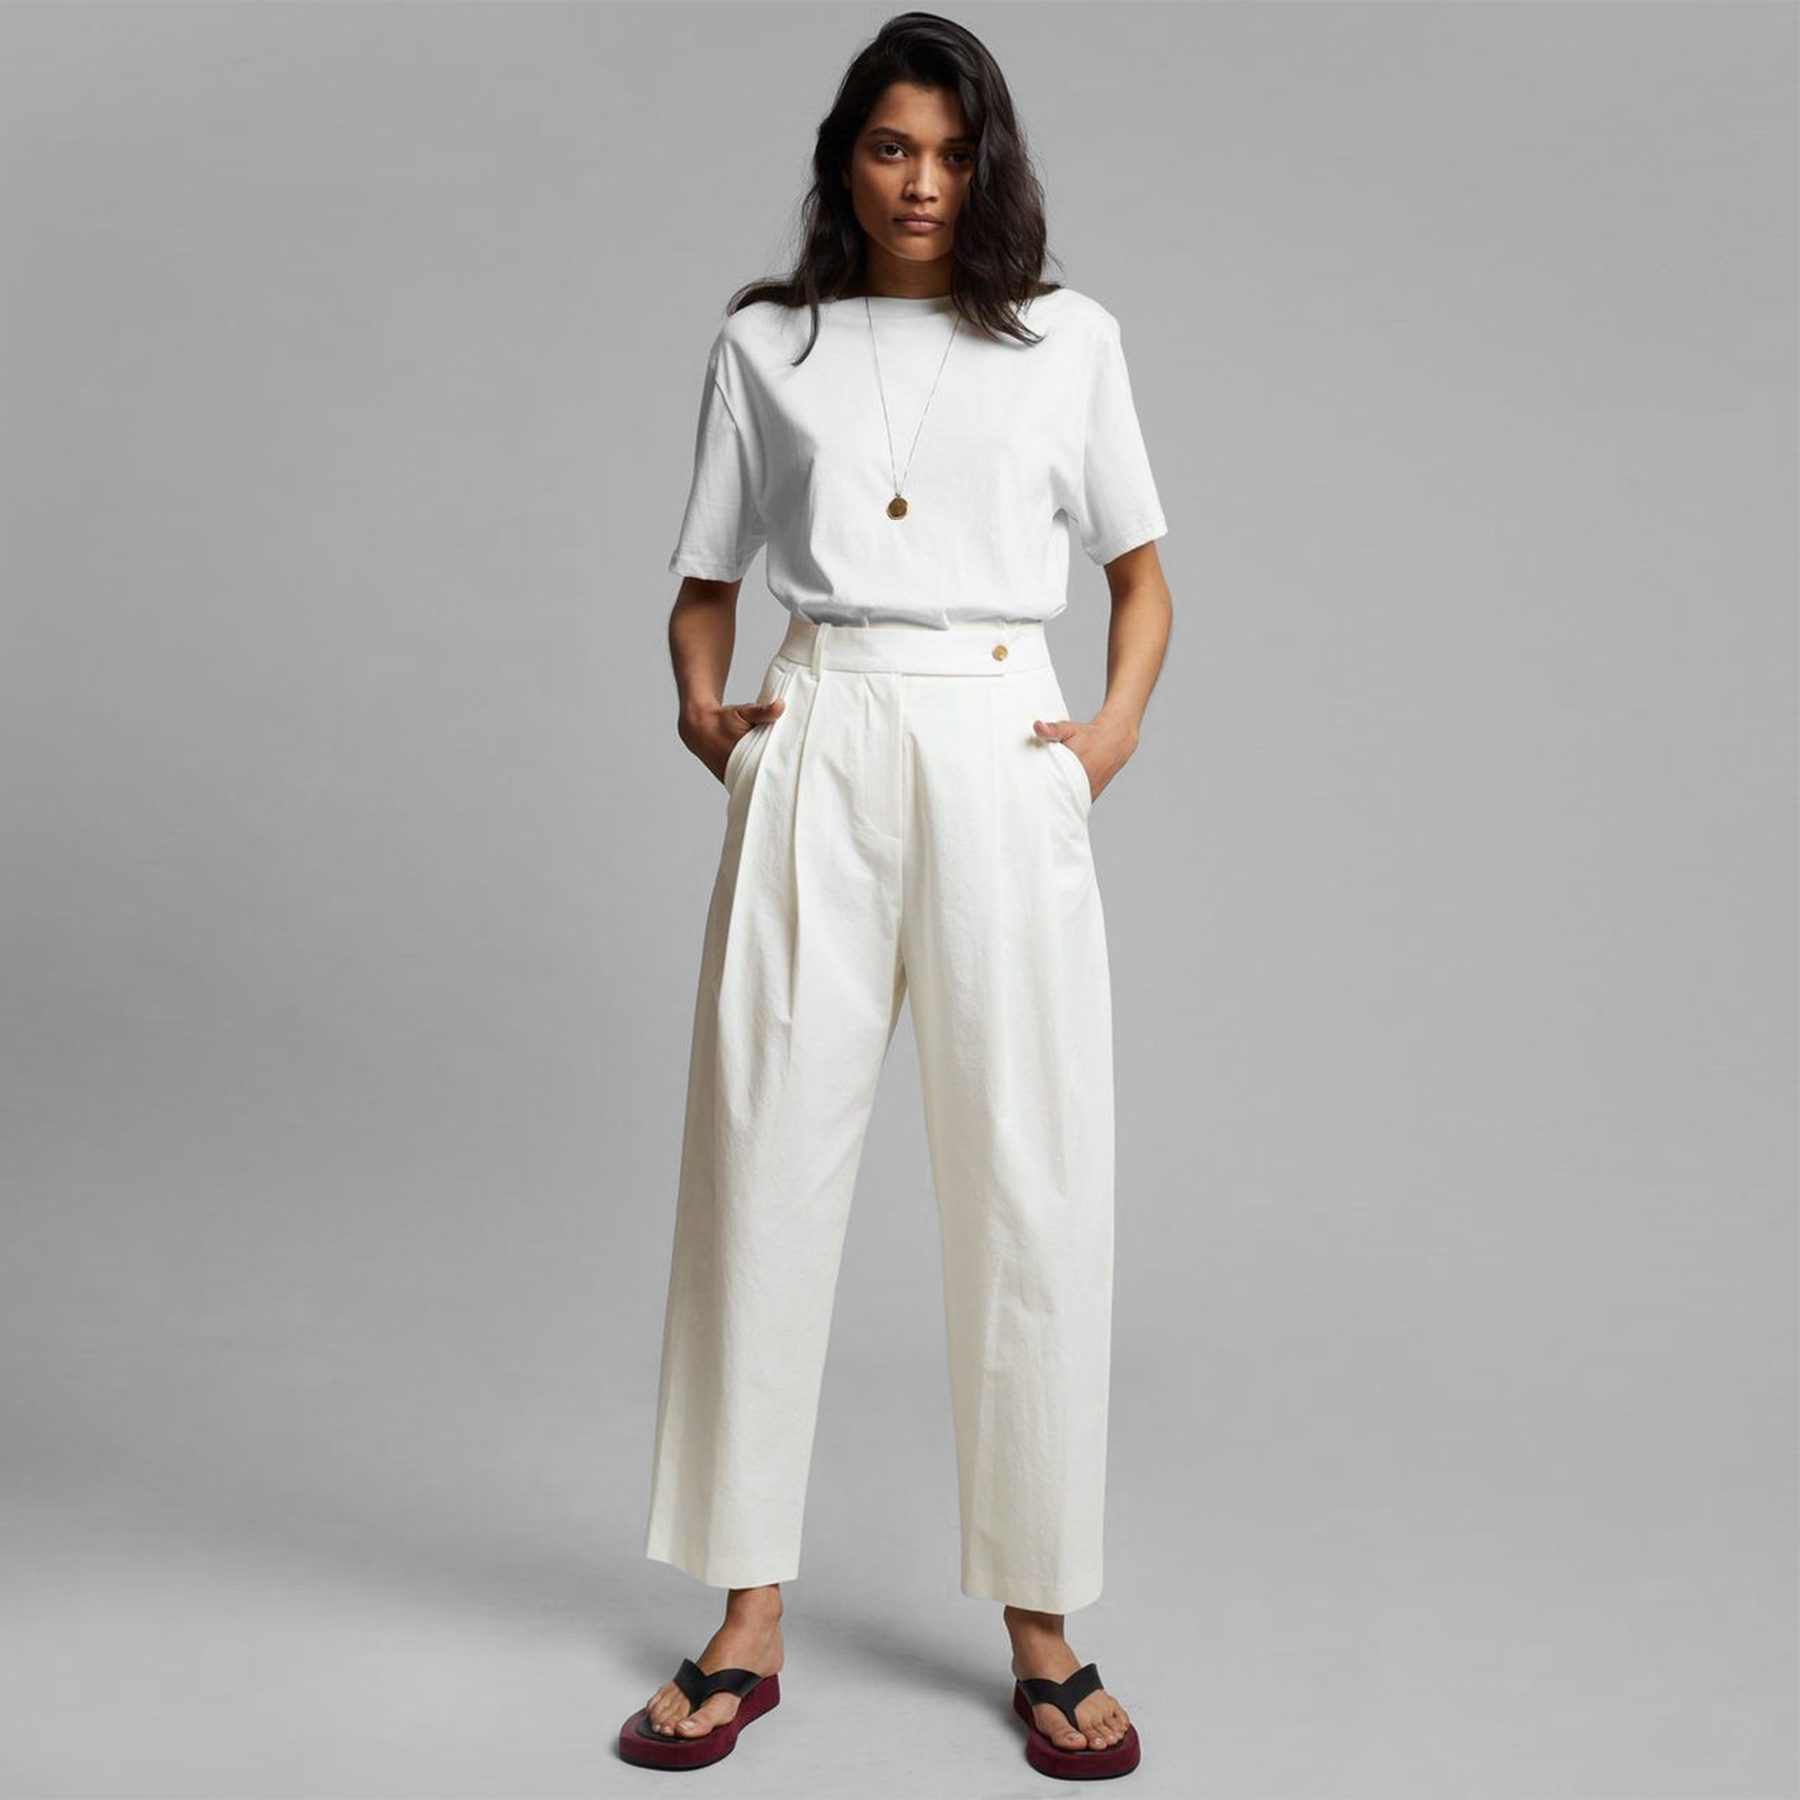 The Frankie Shop Feria Pleated Trousers